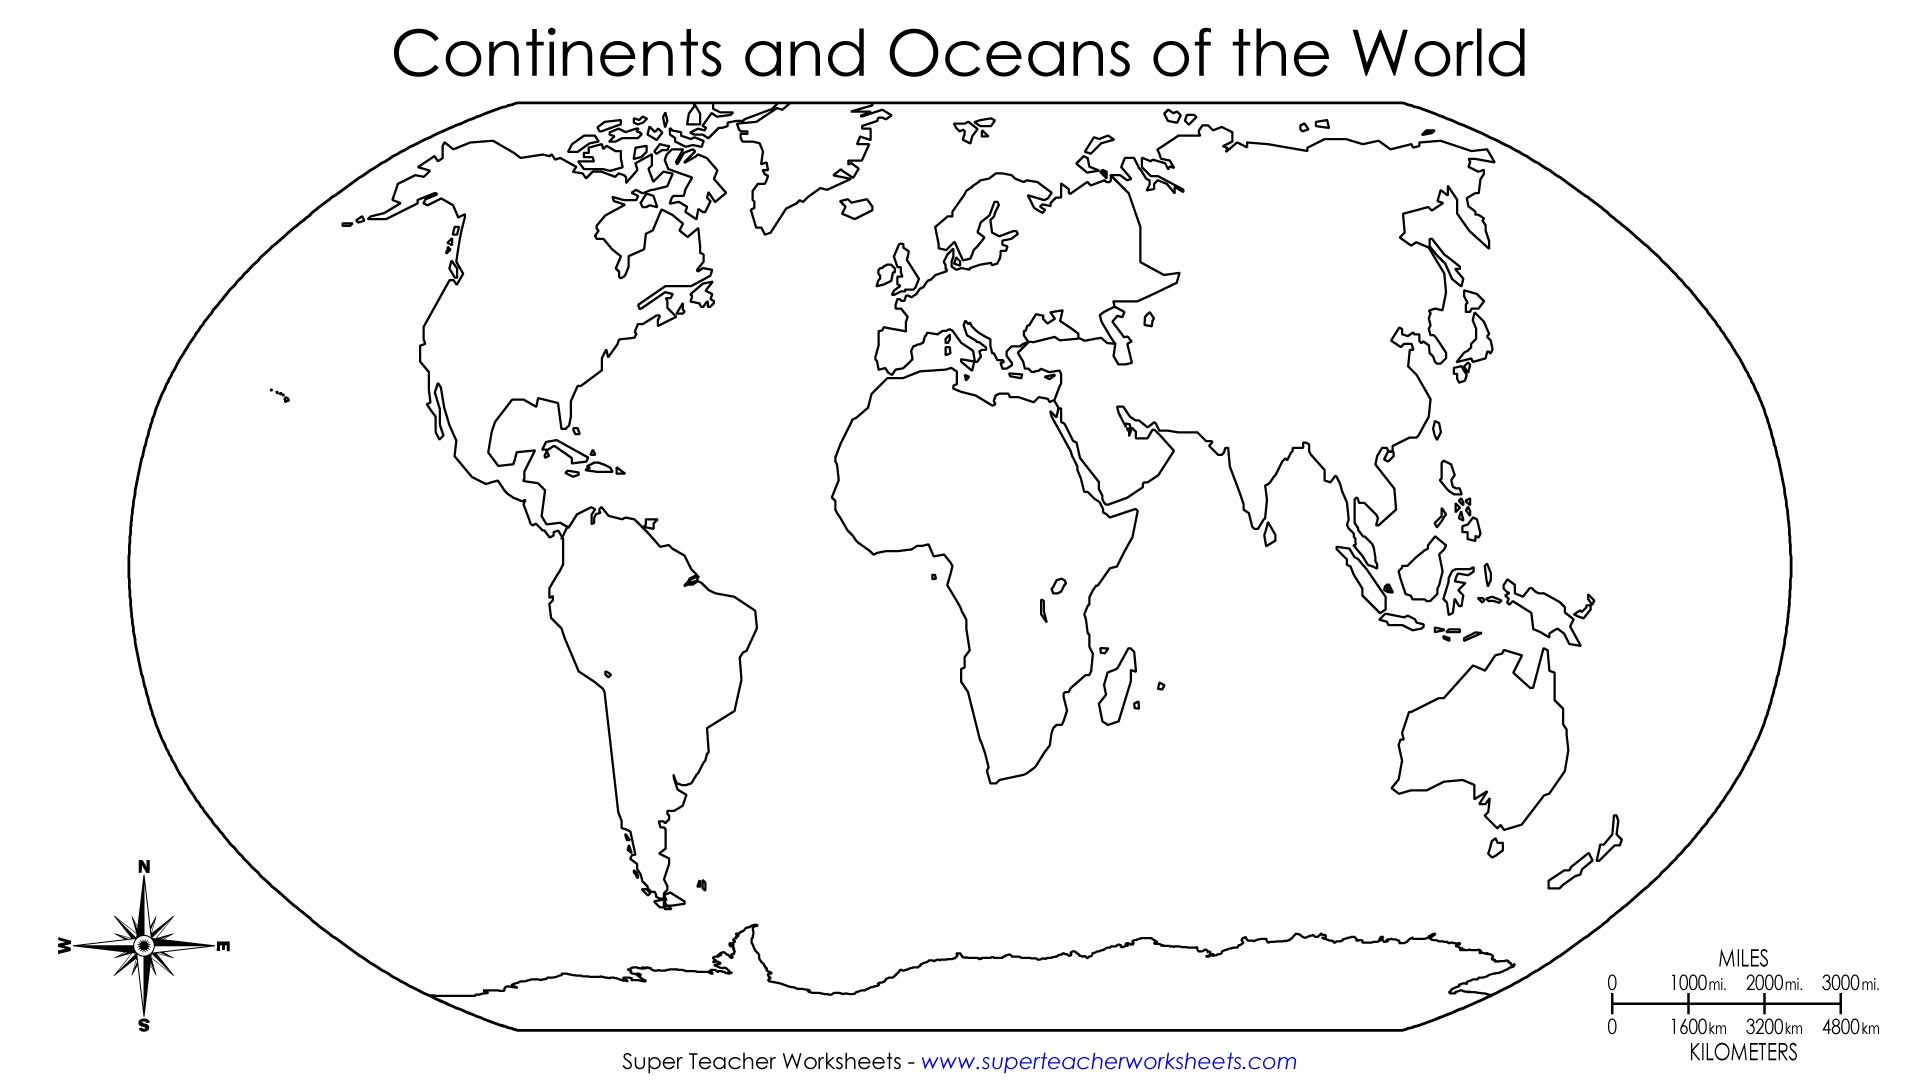 worksheet Ocean Currents Worksheet continent and ocean worksheet free worksheets library download c t ents of w ld ksheets this b sic m p shows